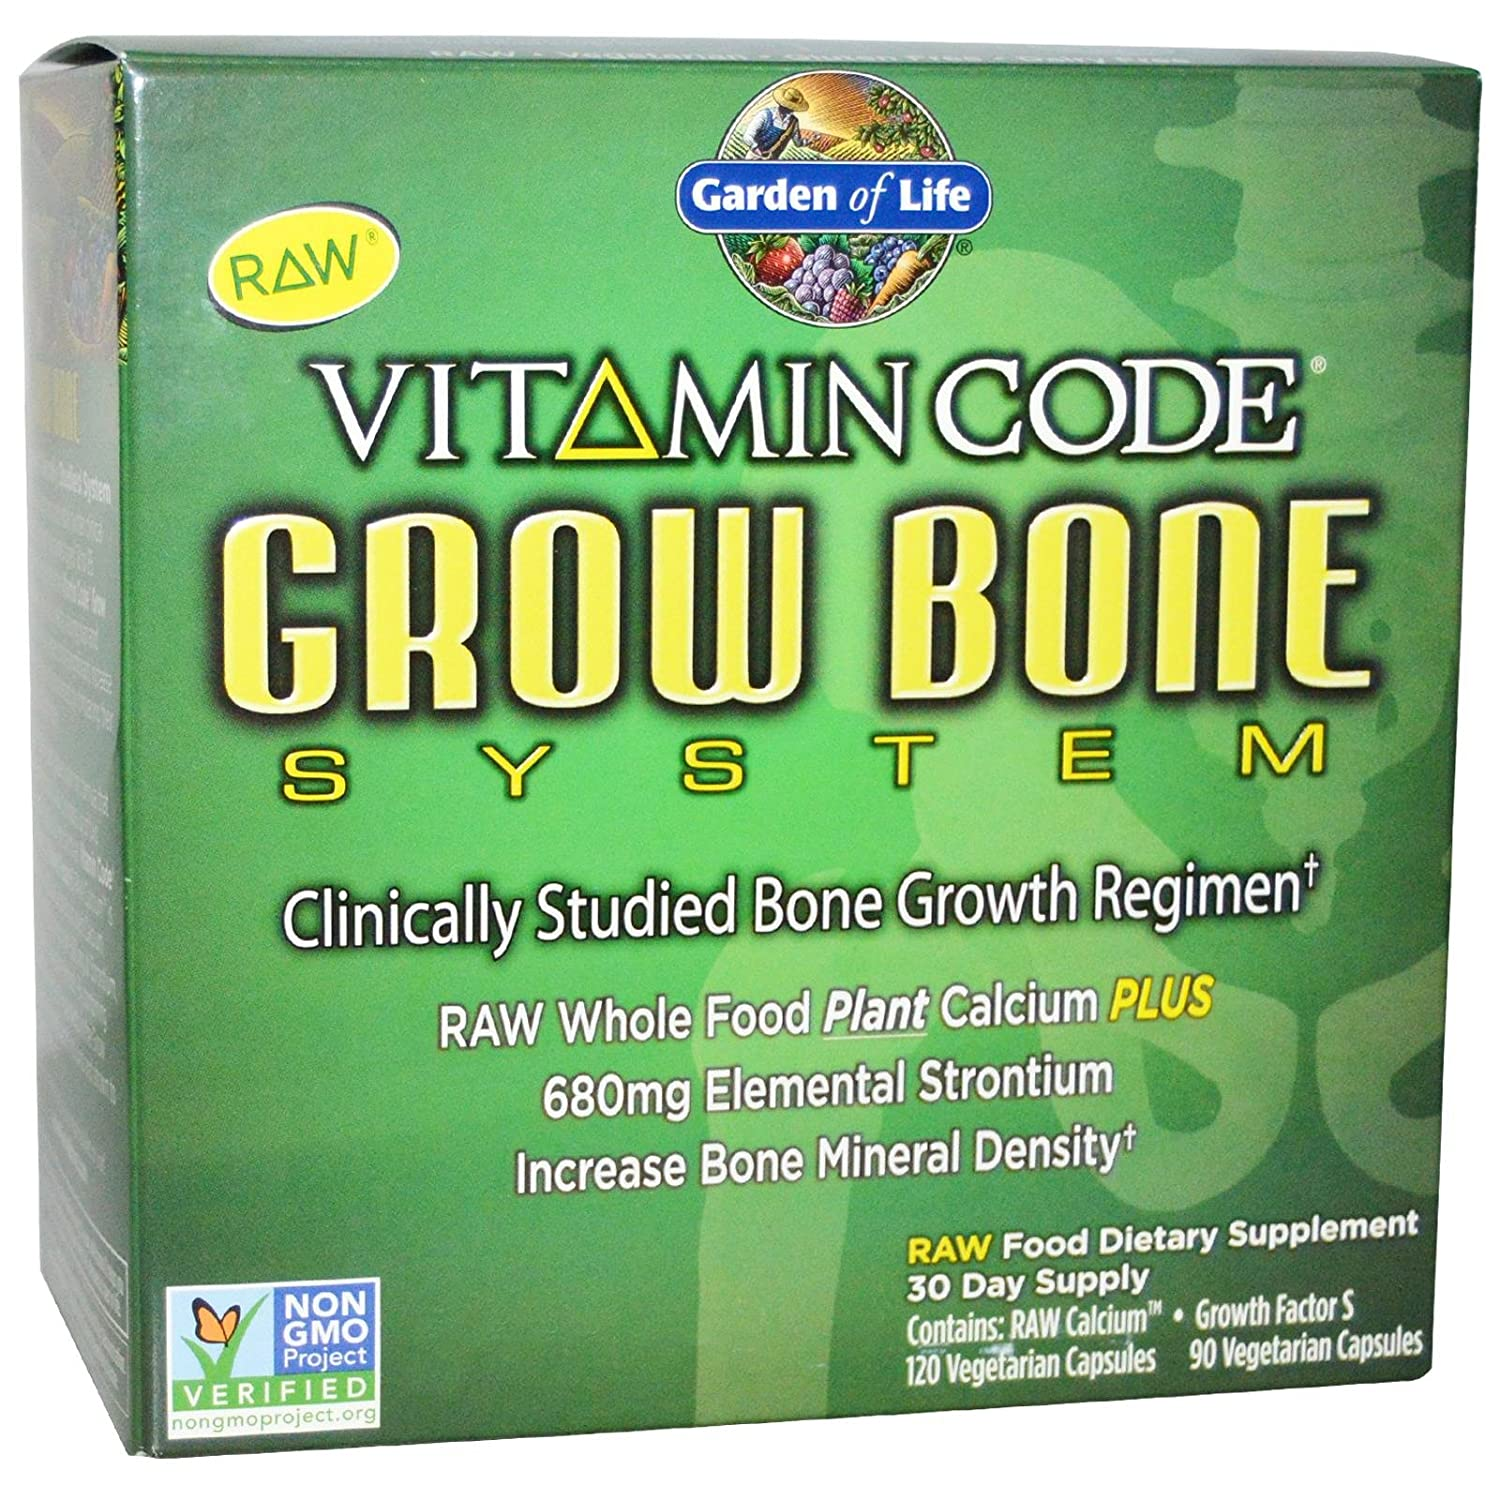 Amazoncom Garden of Life Vitamin Code Grow Bone 2 pack 60 day